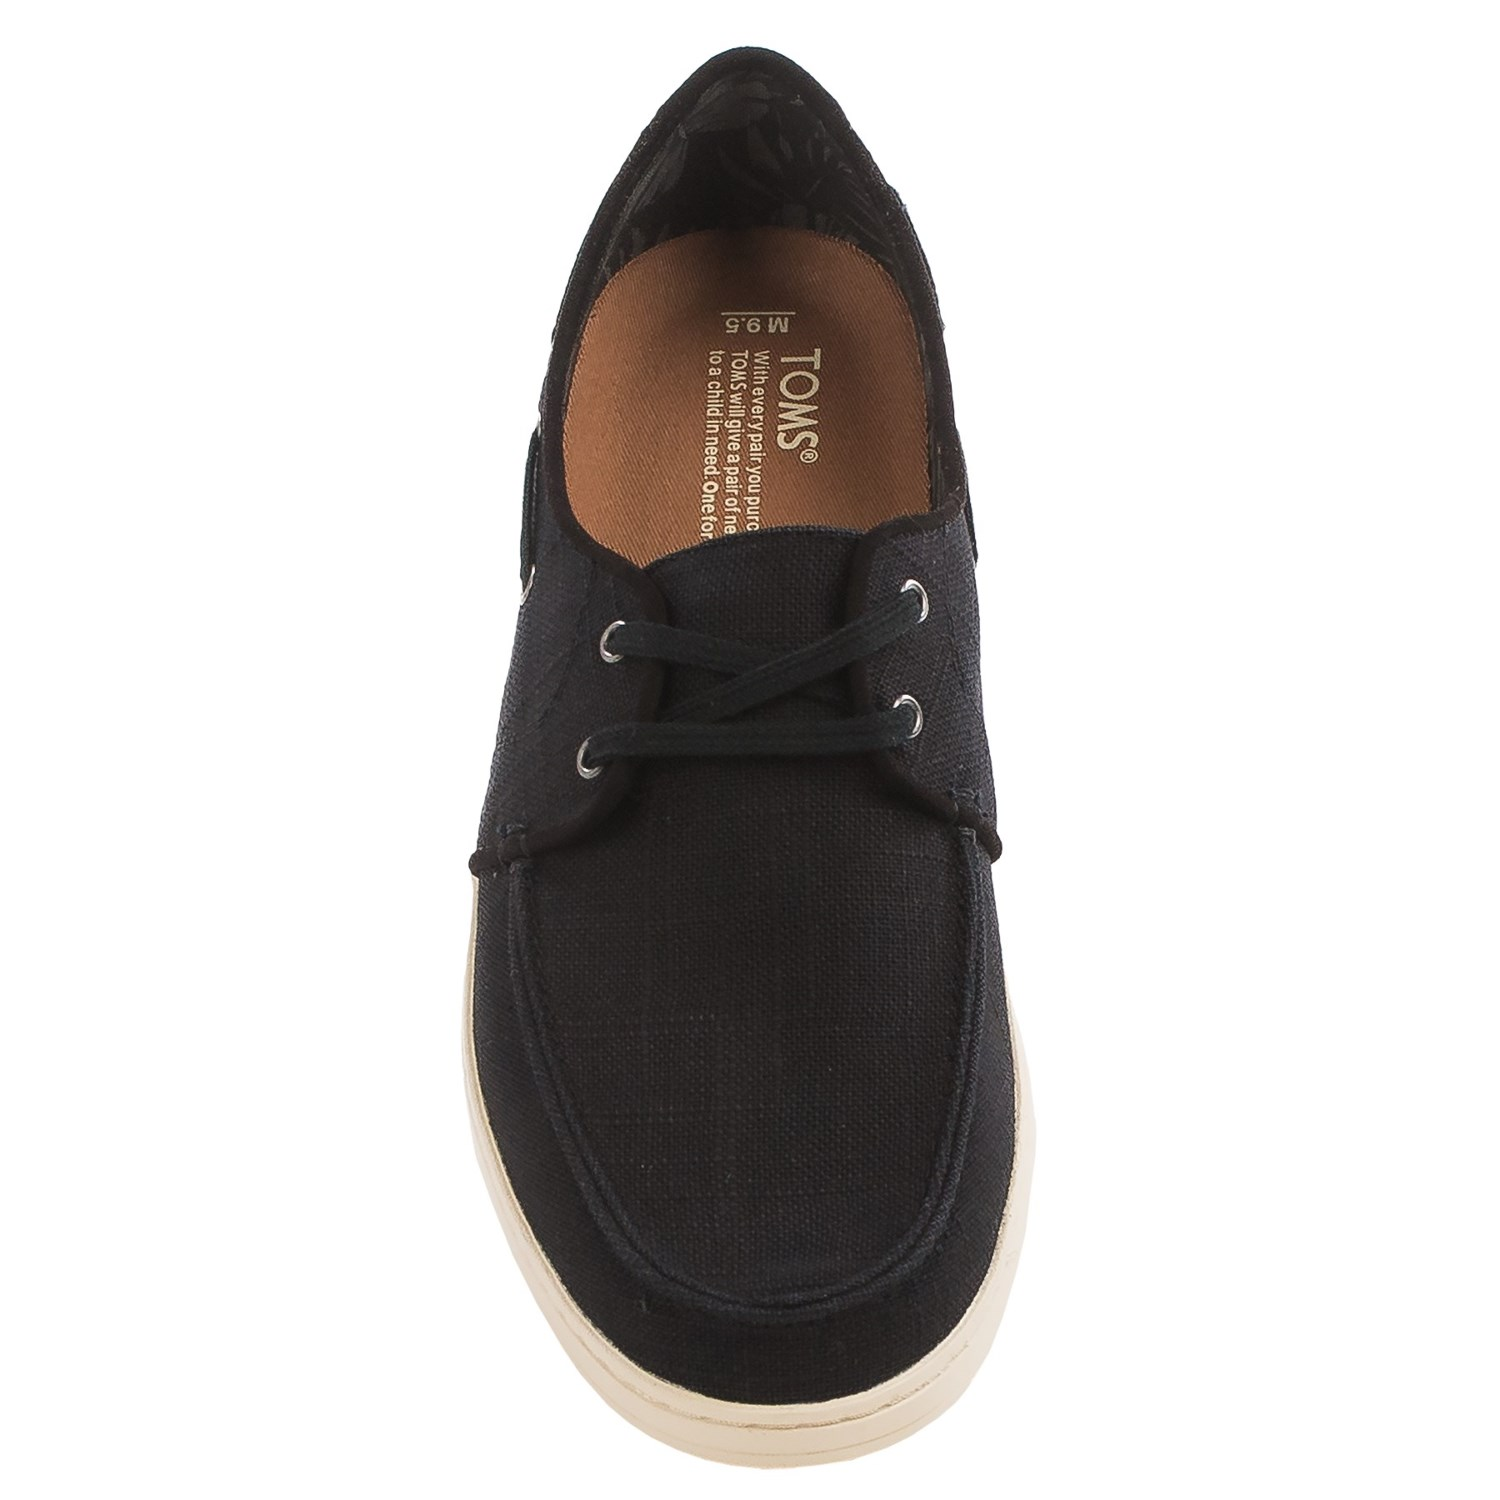 Find Toms Shoes In Stores